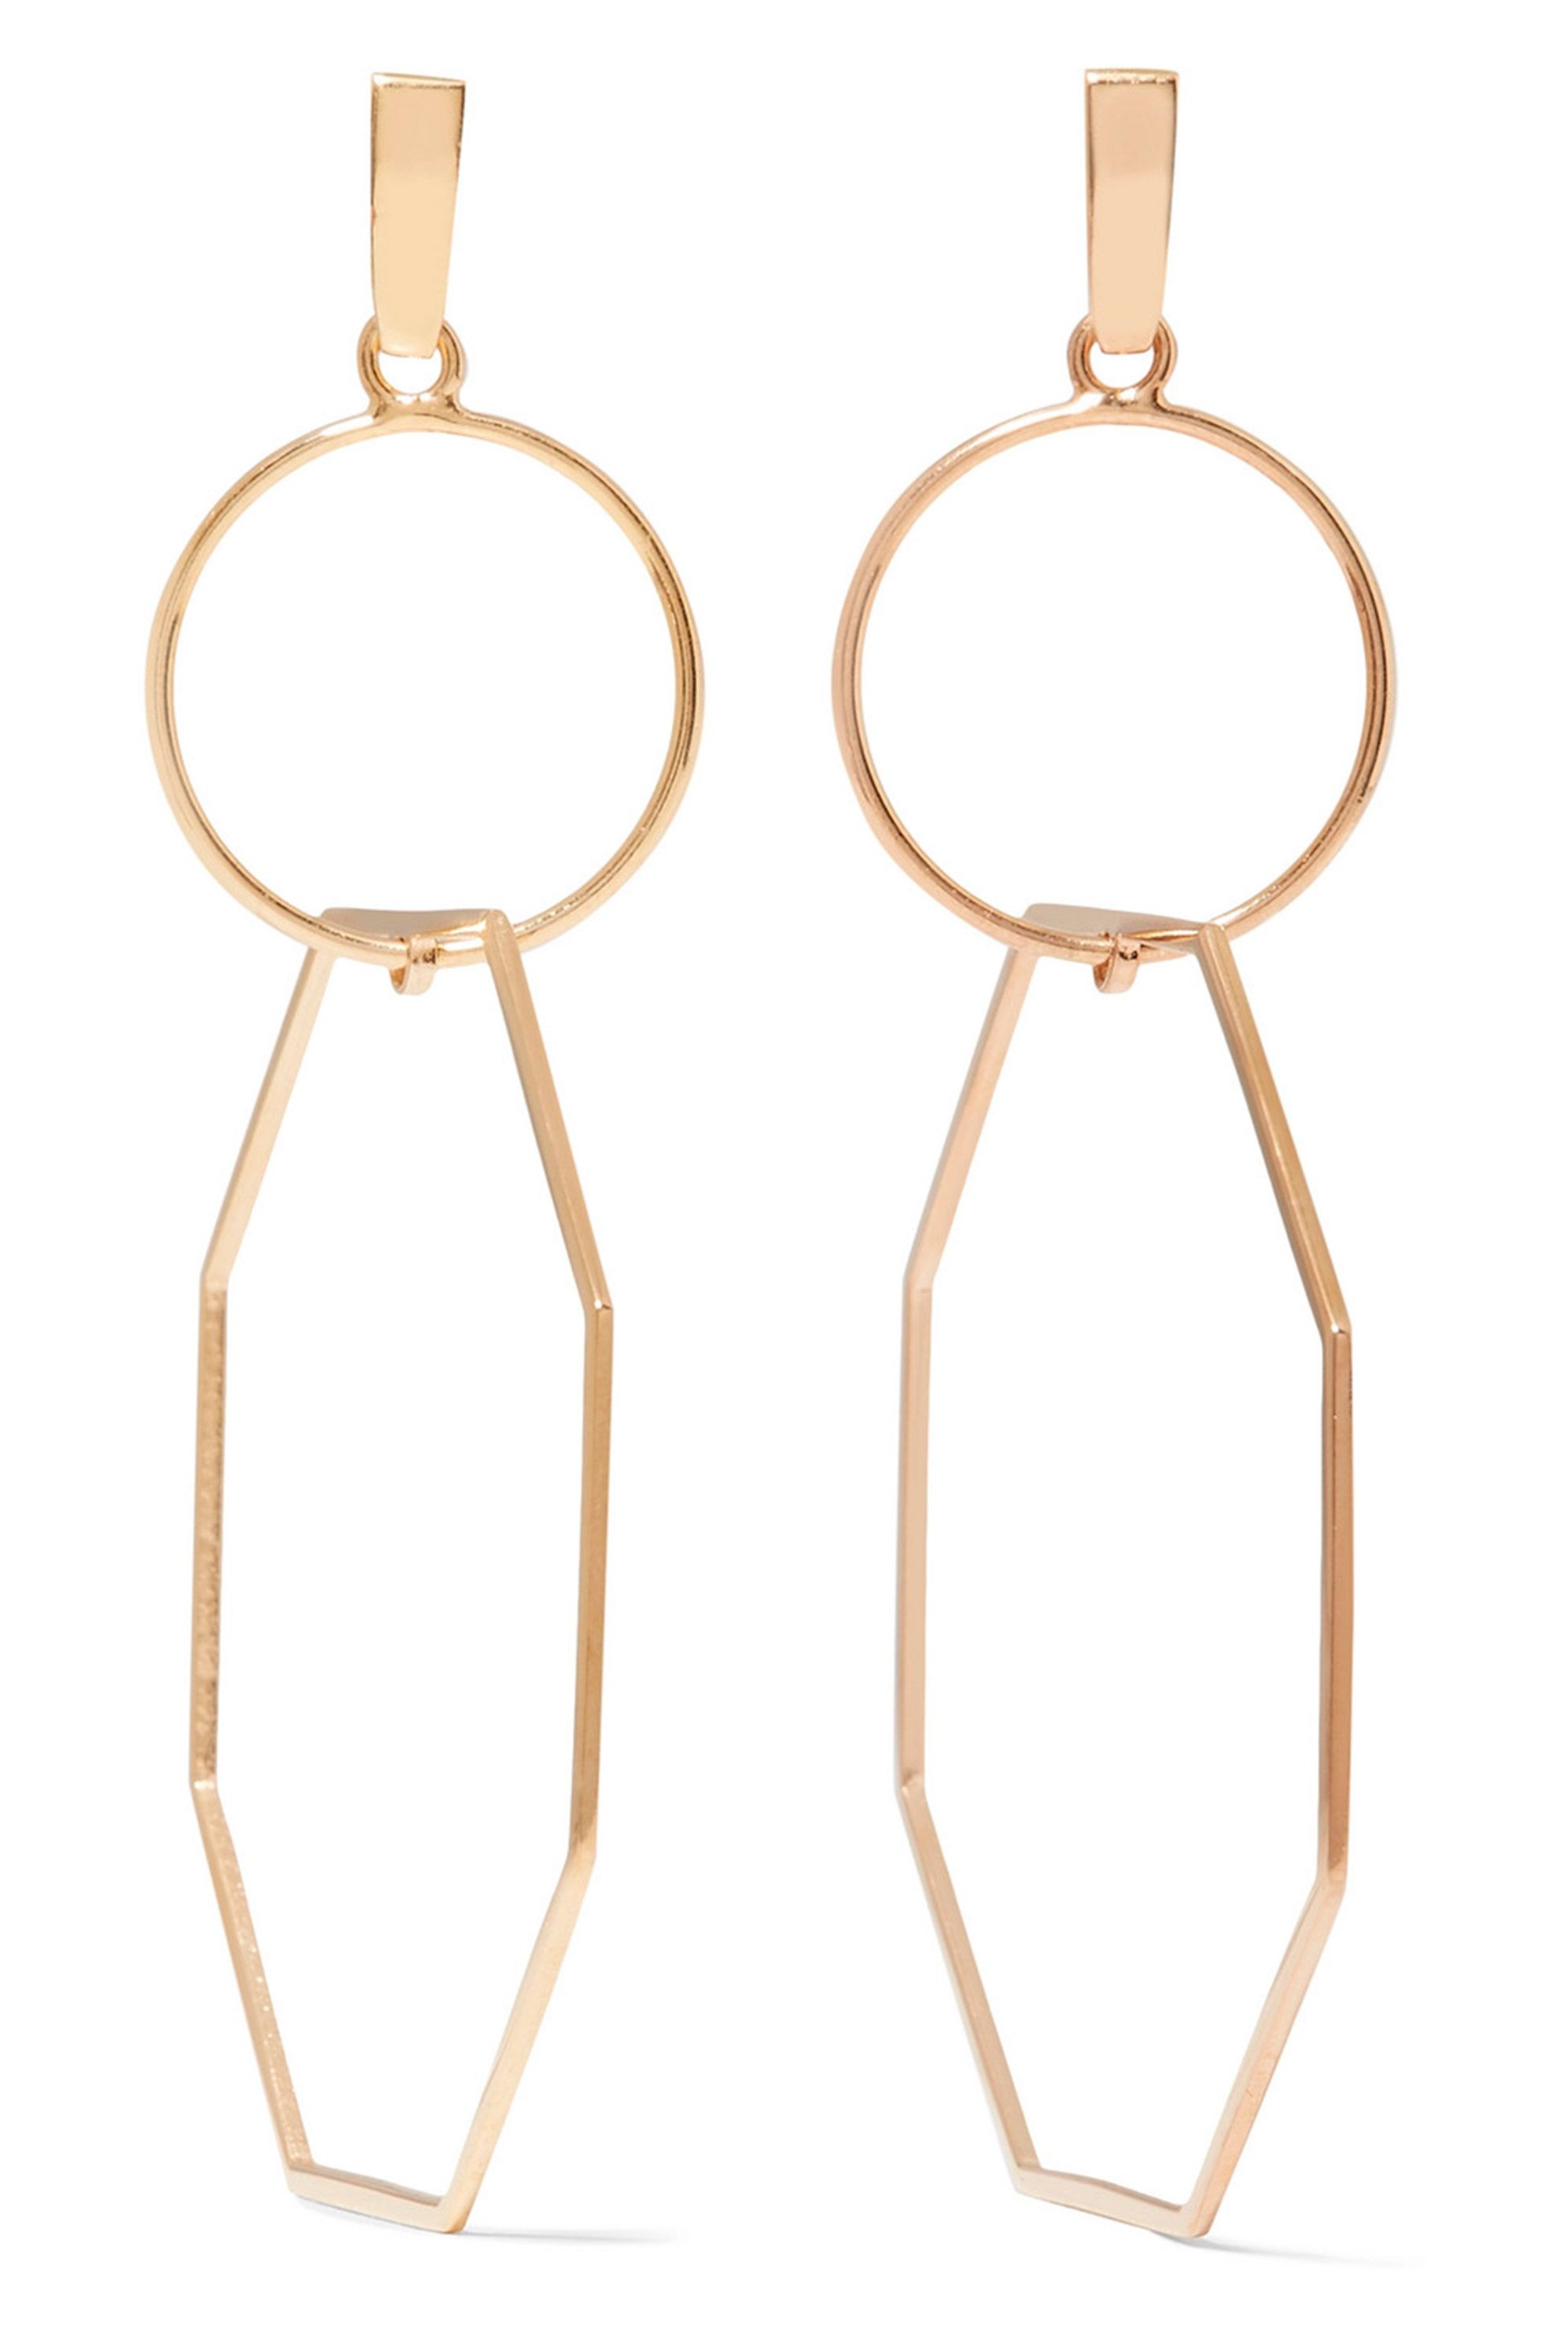 earrings gold products asymmetric store pk sapphireonline outline